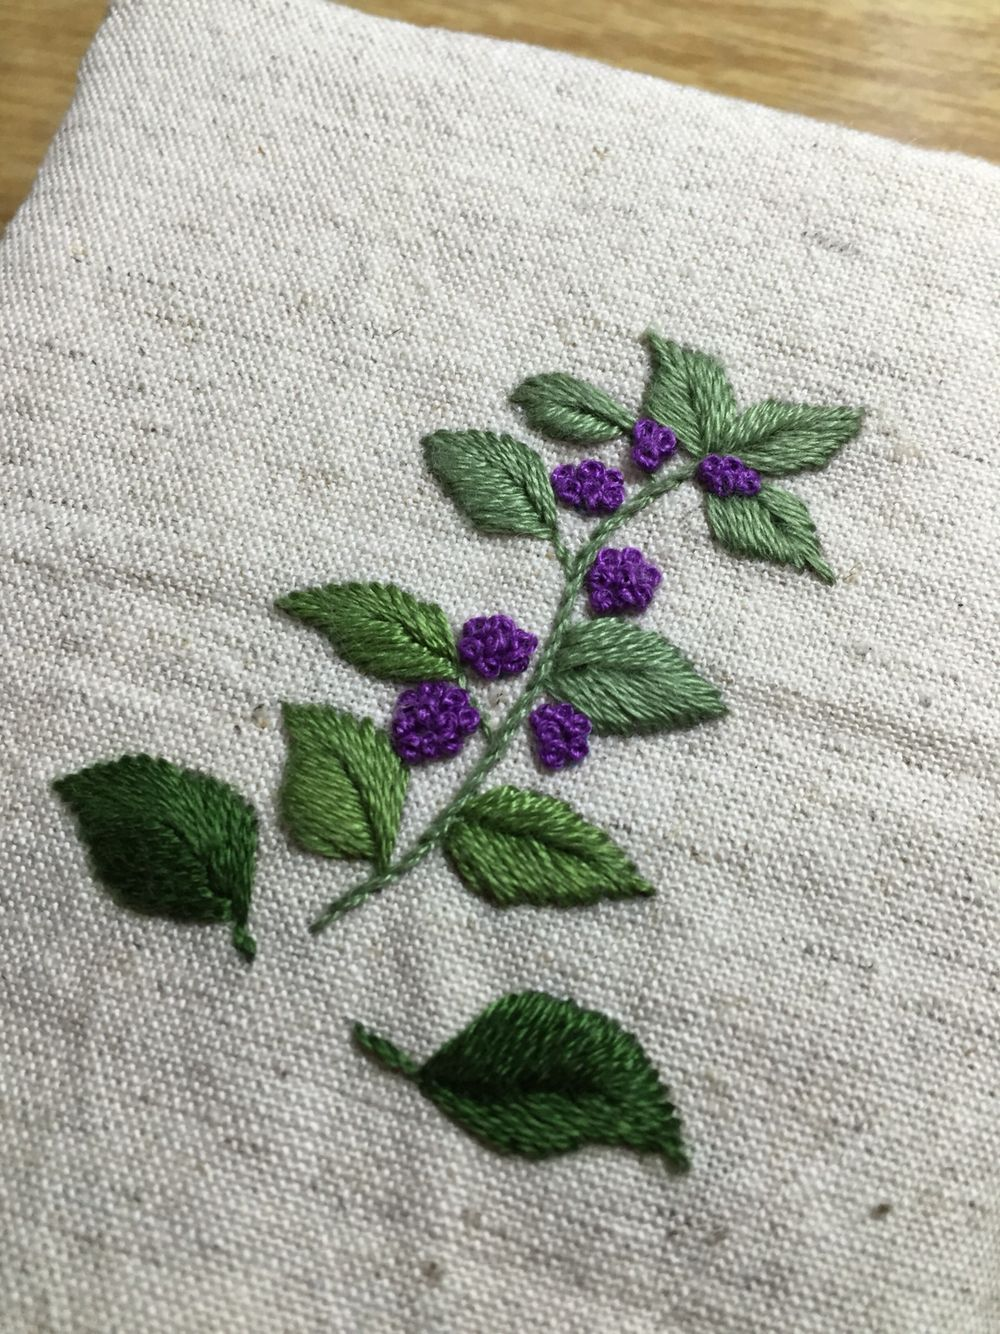 Embroidery Penny O Busy Needles Pinterest Embroidery Hand